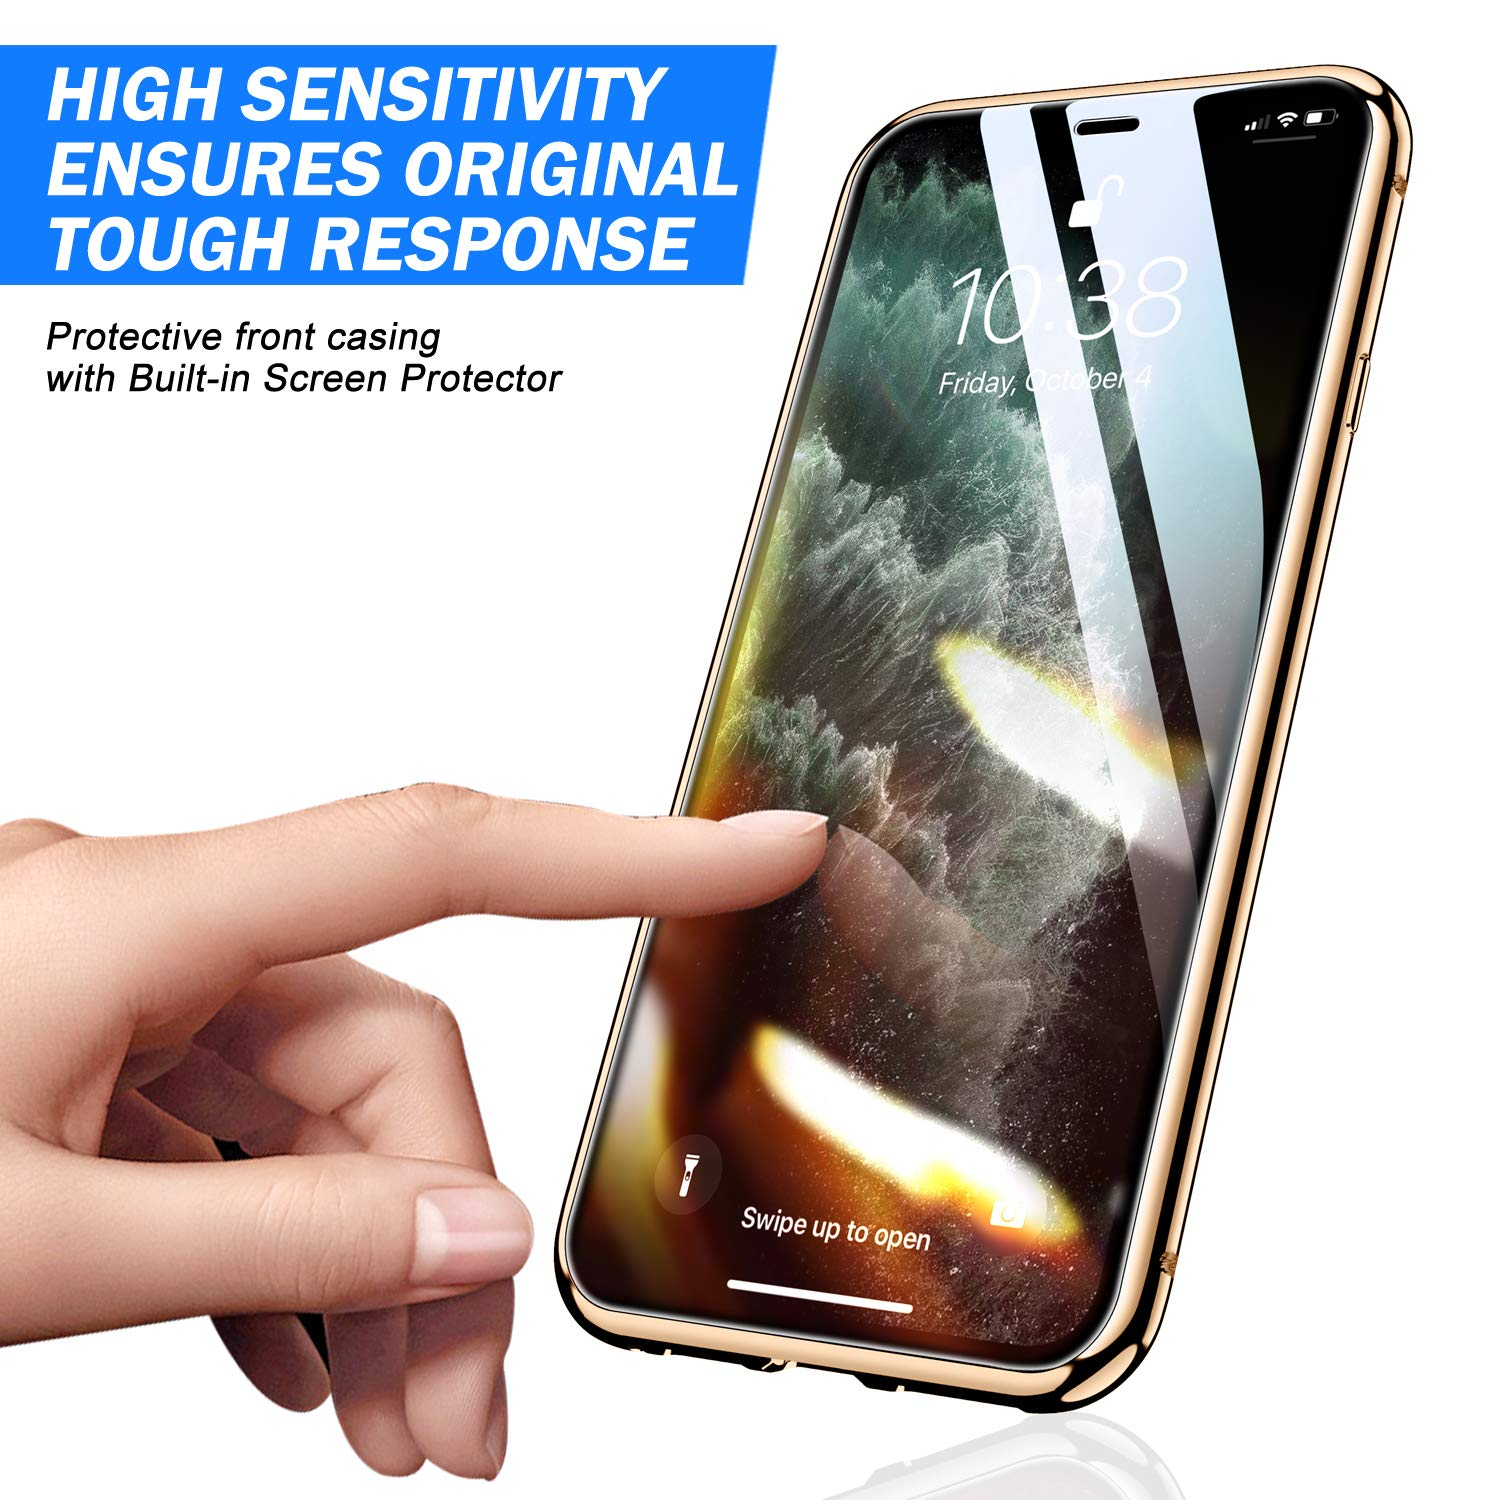 Magnetic Protective Case For IPhone 12 11 Pro XS MAX XR X 8 7 Plus With Double-Sided Tempered Glass Metal Frame Phone Cover 3